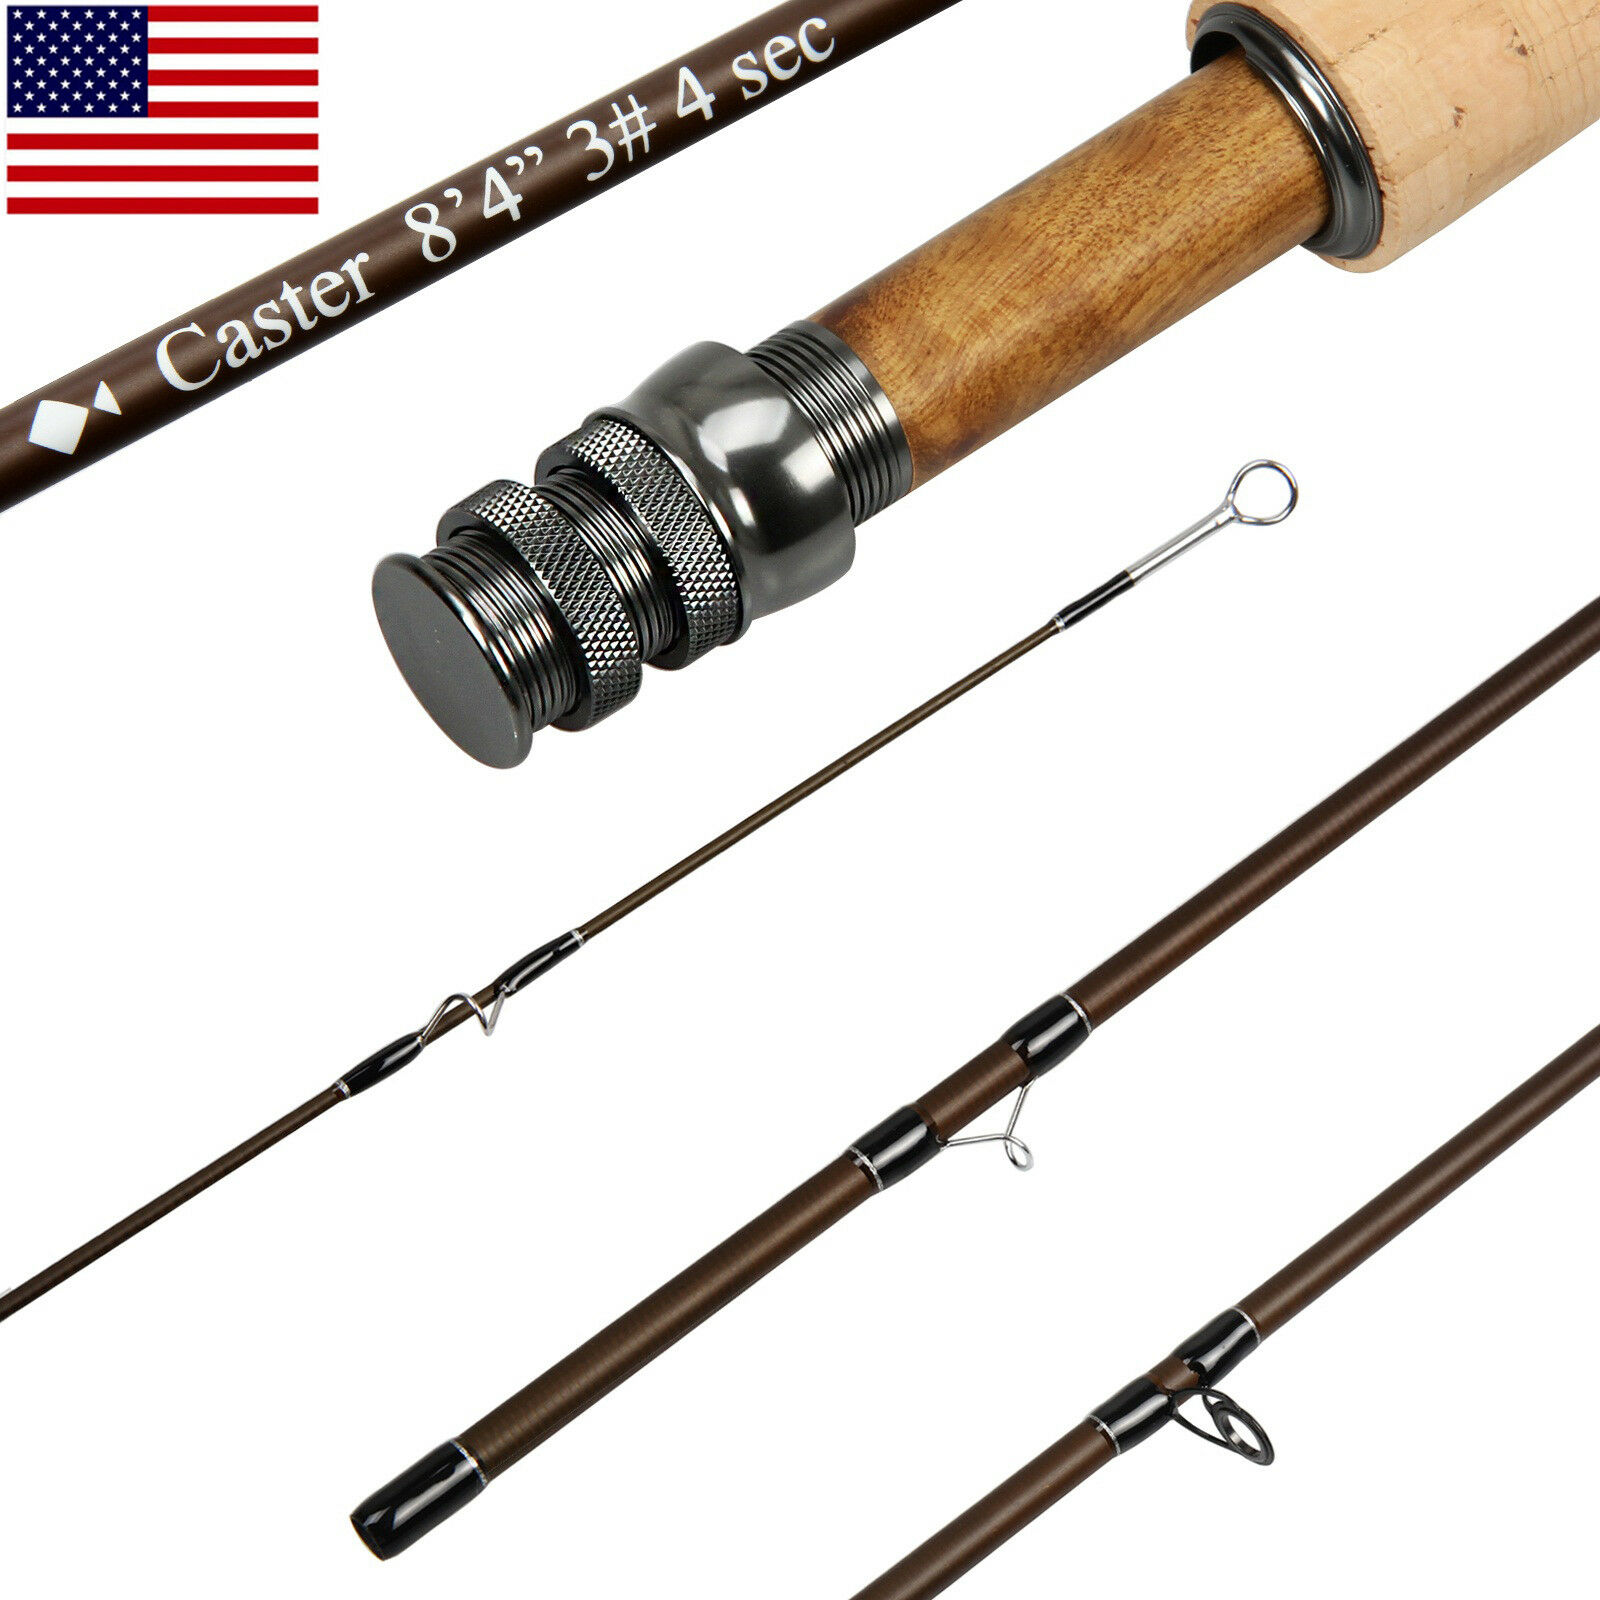 3 5 8WT Fly Rod 8.3FT 9FT Medium-fast  Action 30T Carbon Fiber Fly Fishing Rod  all goods are specials